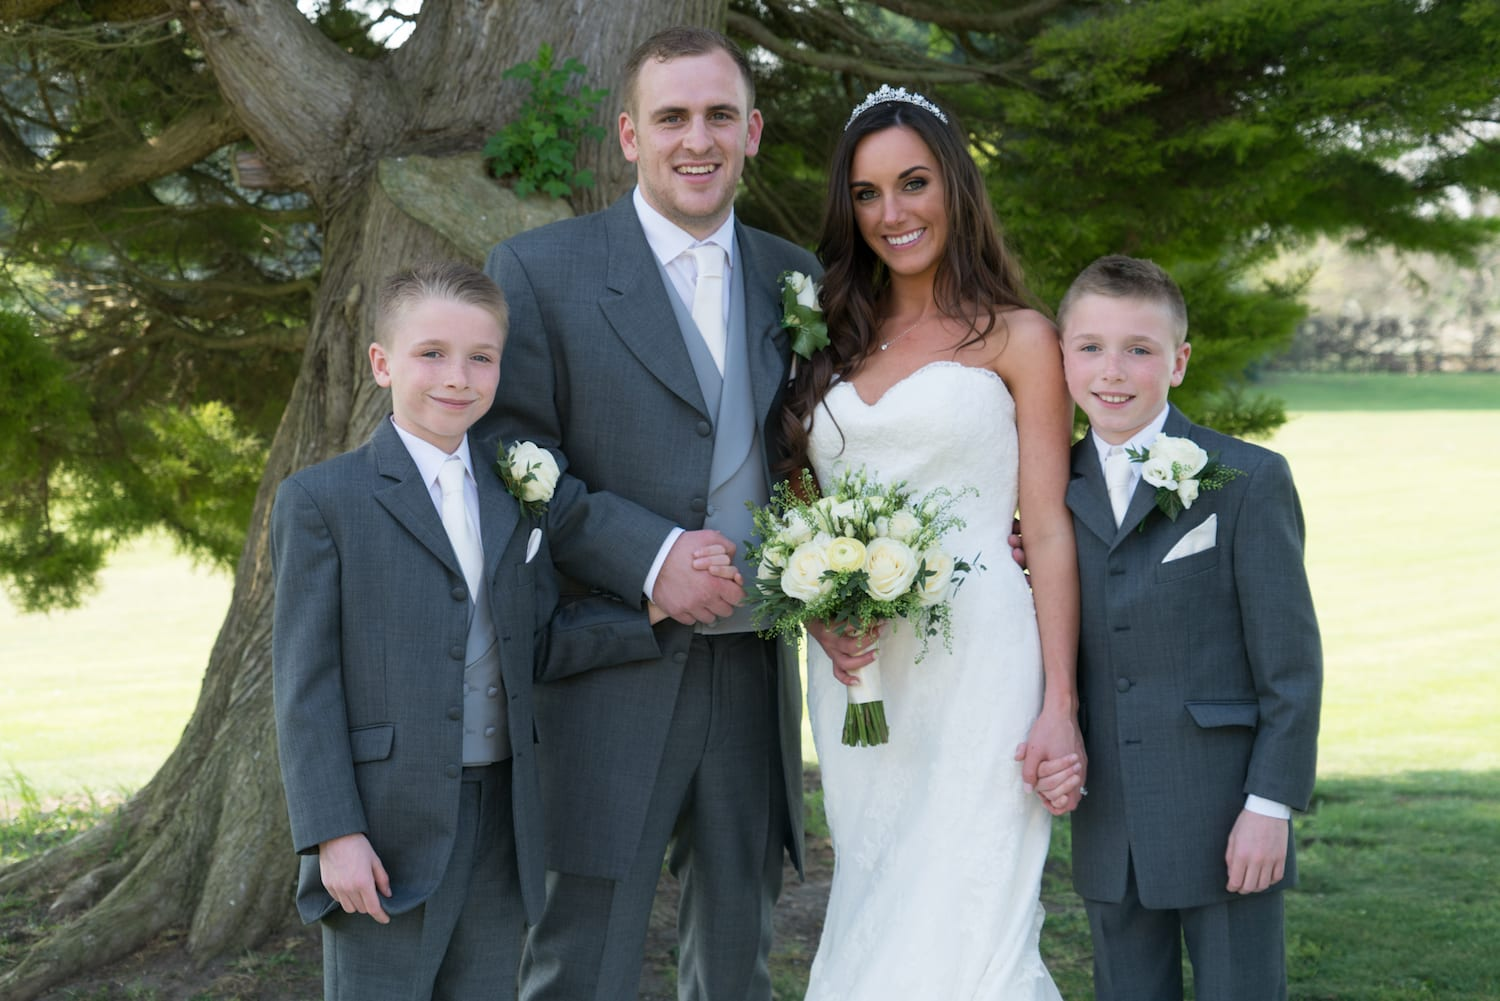 Bride Groom family shot as newlyweds